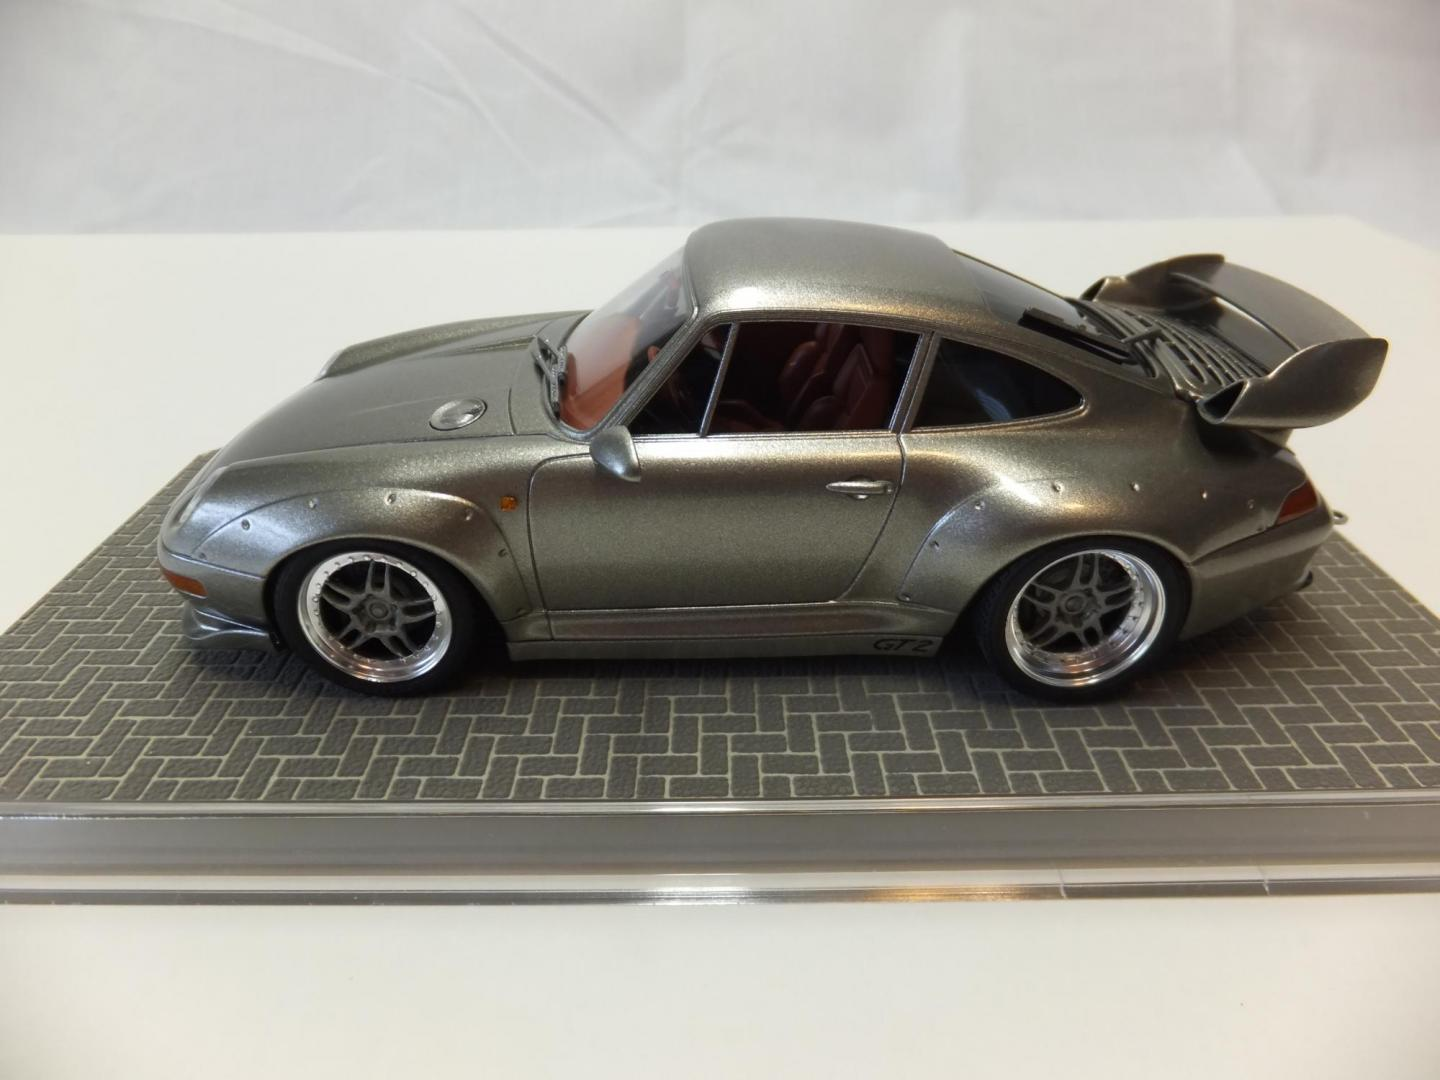 tamiya porsche 911 gt2 street vers under glass model cars magazine forum. Black Bedroom Furniture Sets. Home Design Ideas